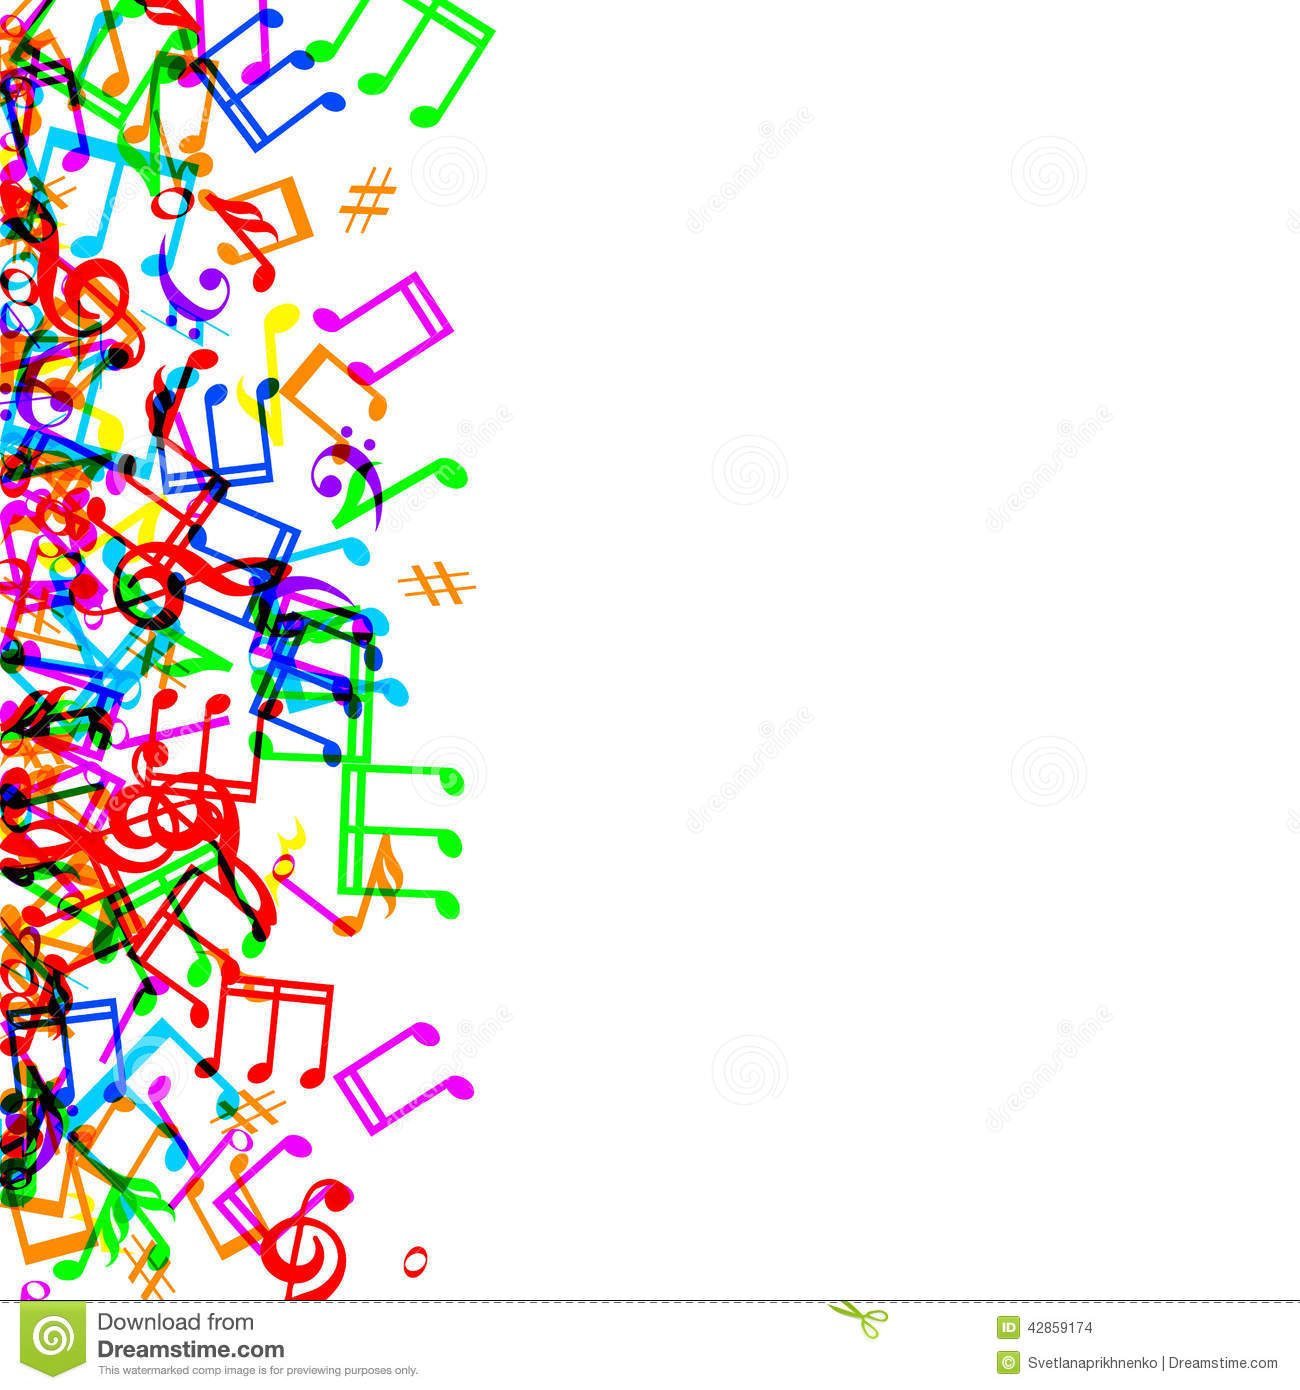 Colorful Music Note Border Clip Art Music Notes Border Colorful Frame